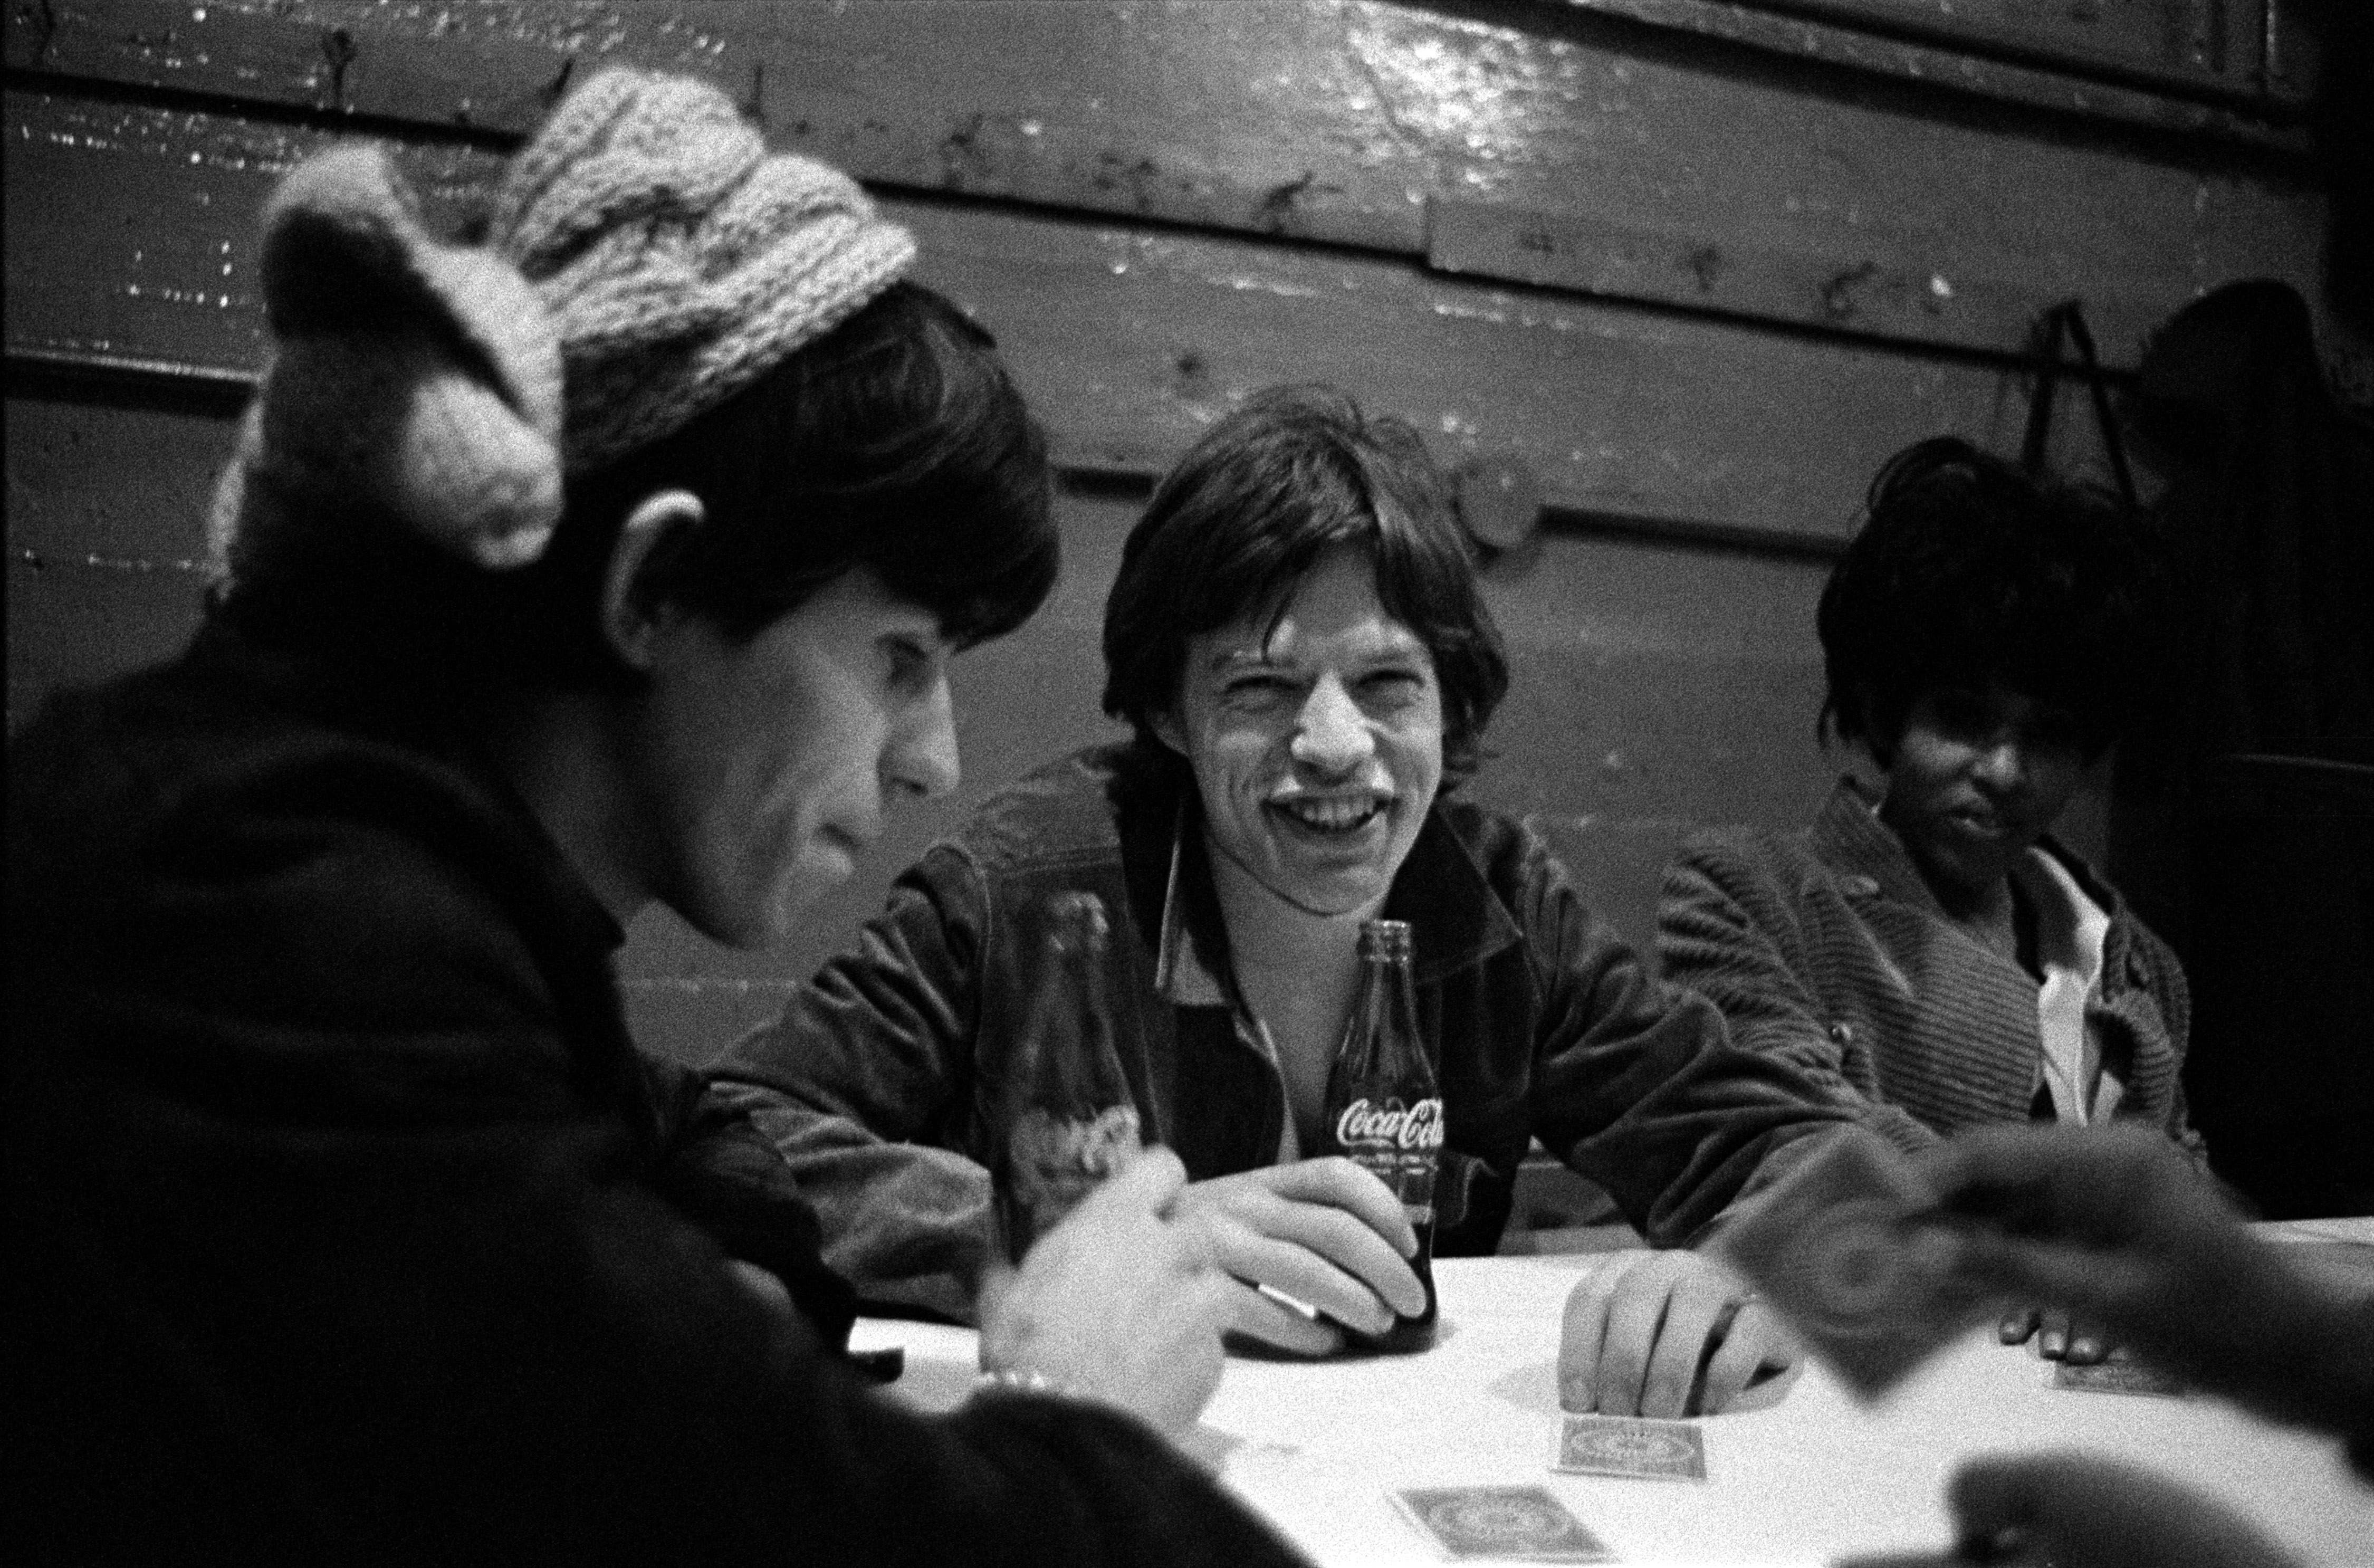 Keith Richards Amp Mick Jagger With Nona Hendrix Backstage